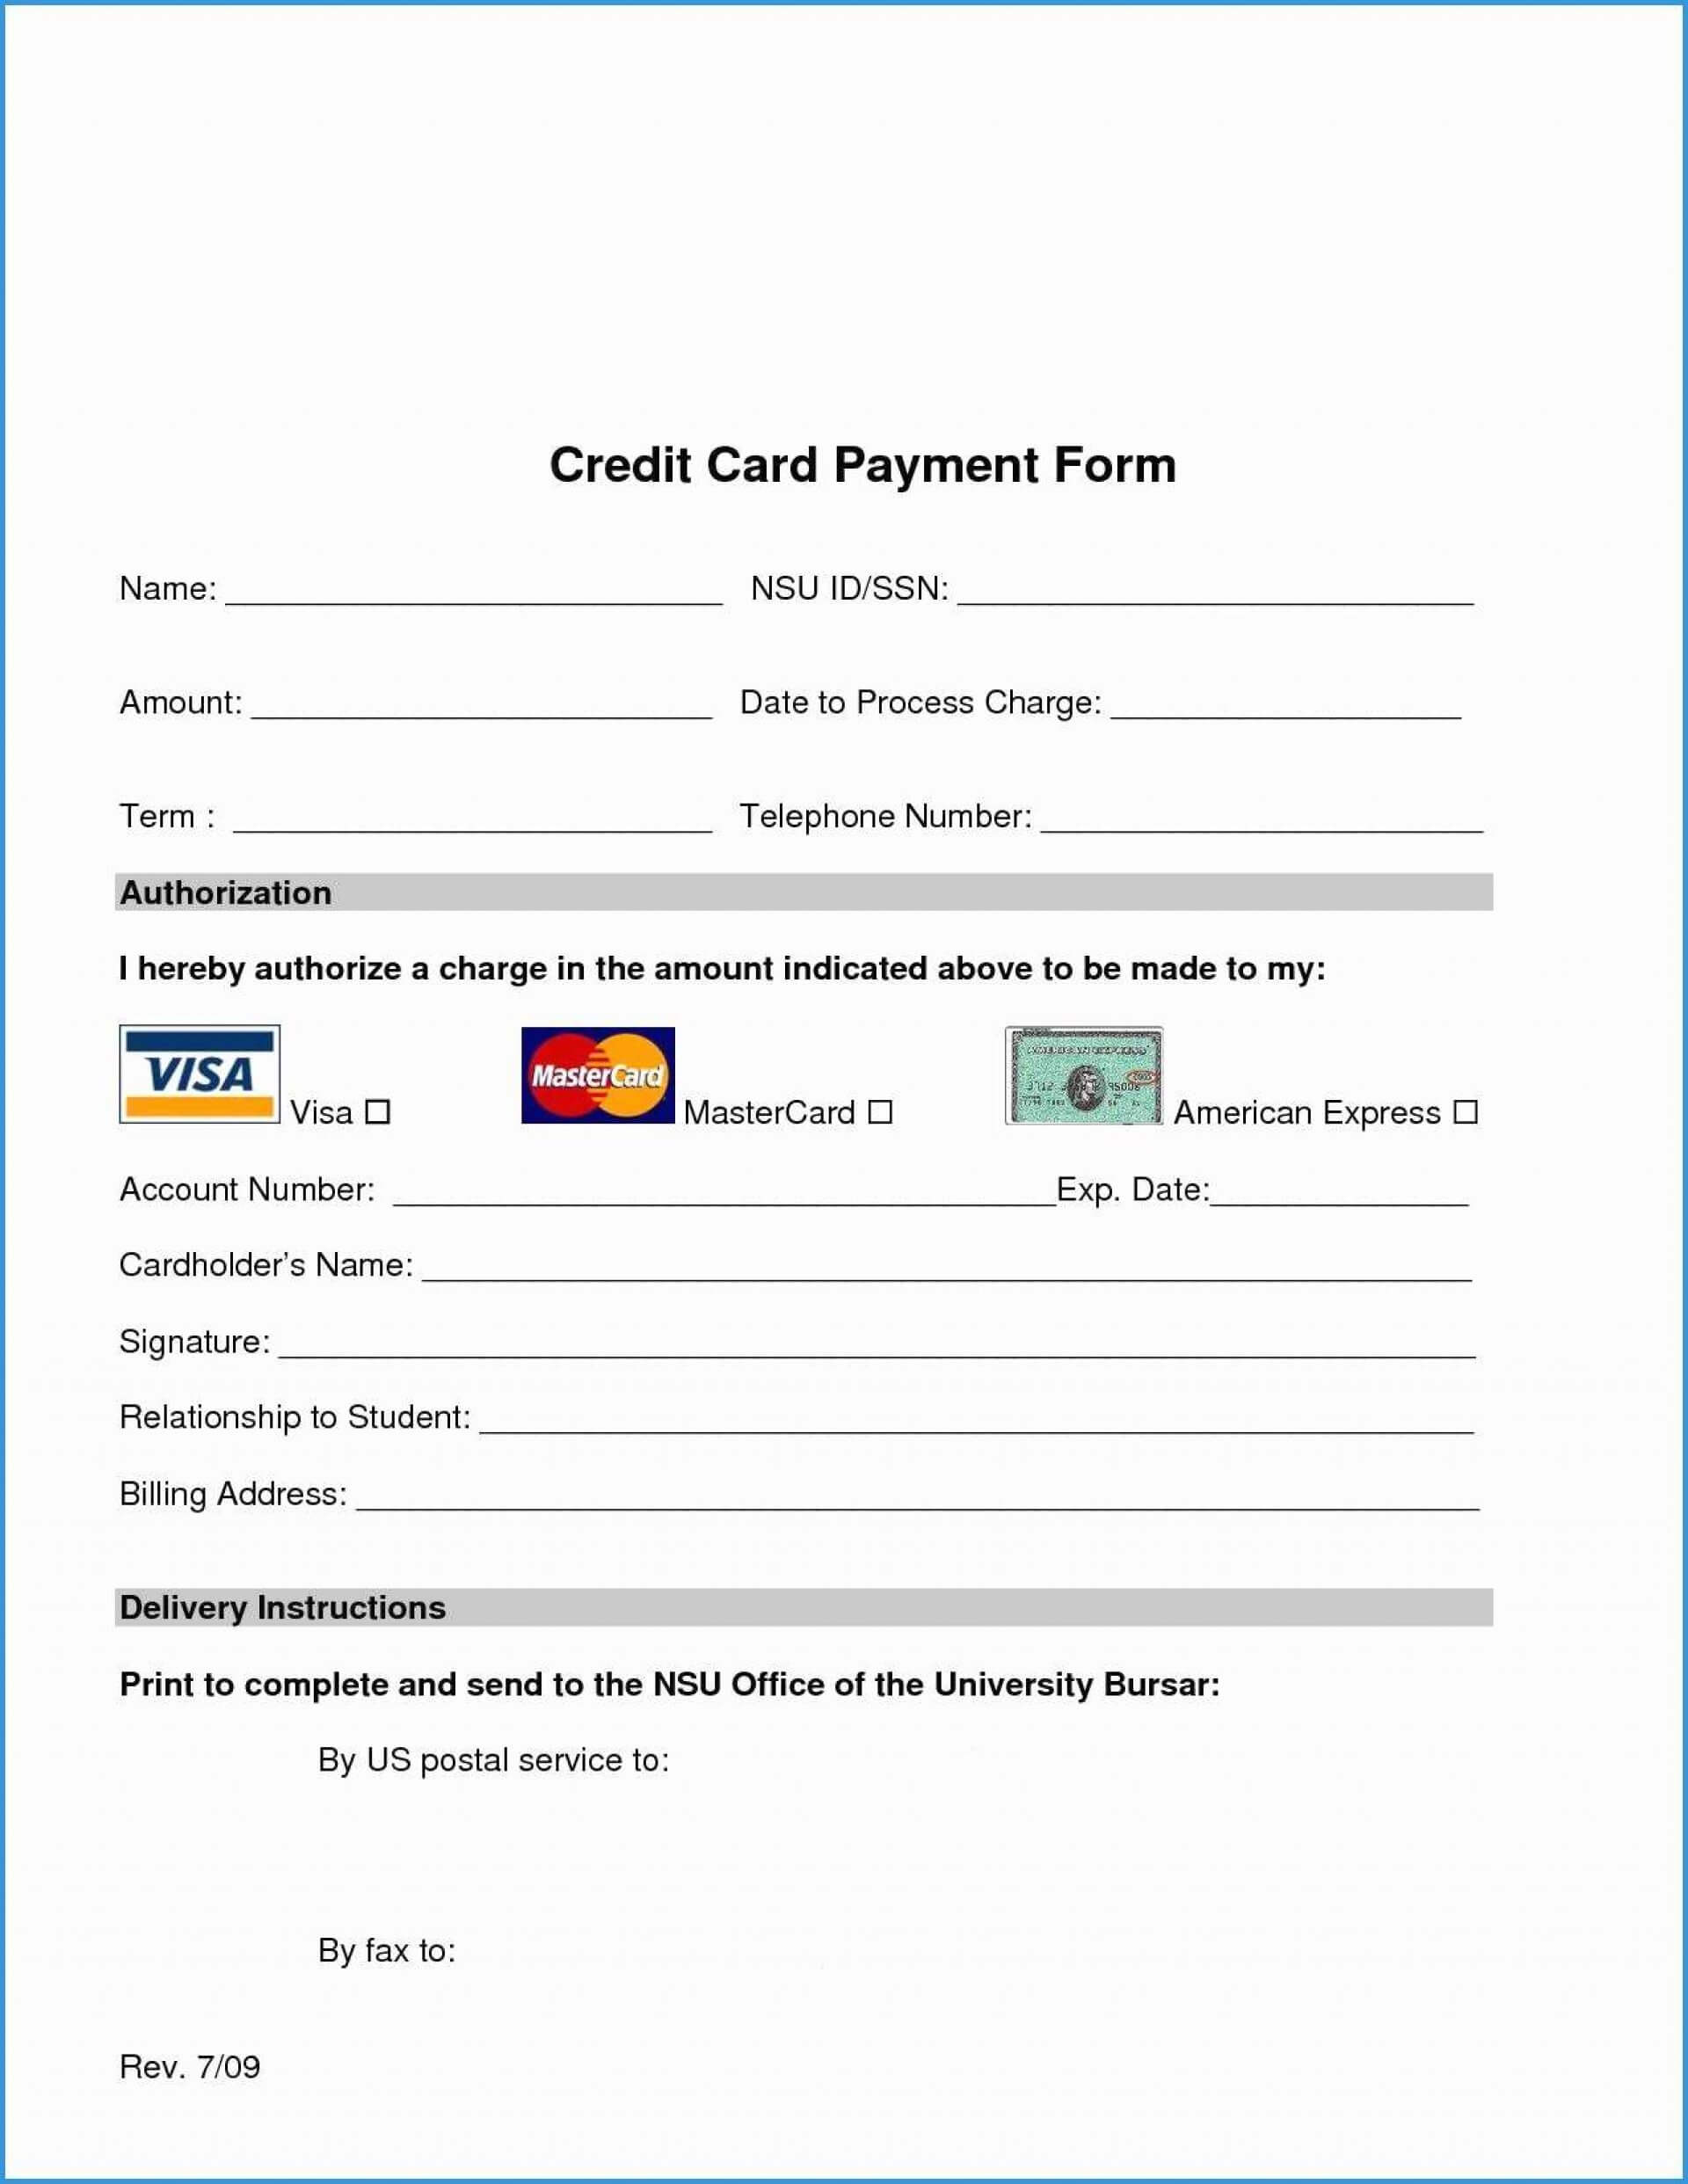 026 Template Ideas Credit Card Authorization Form Word Free Throughout Credit Card Size Template For Word